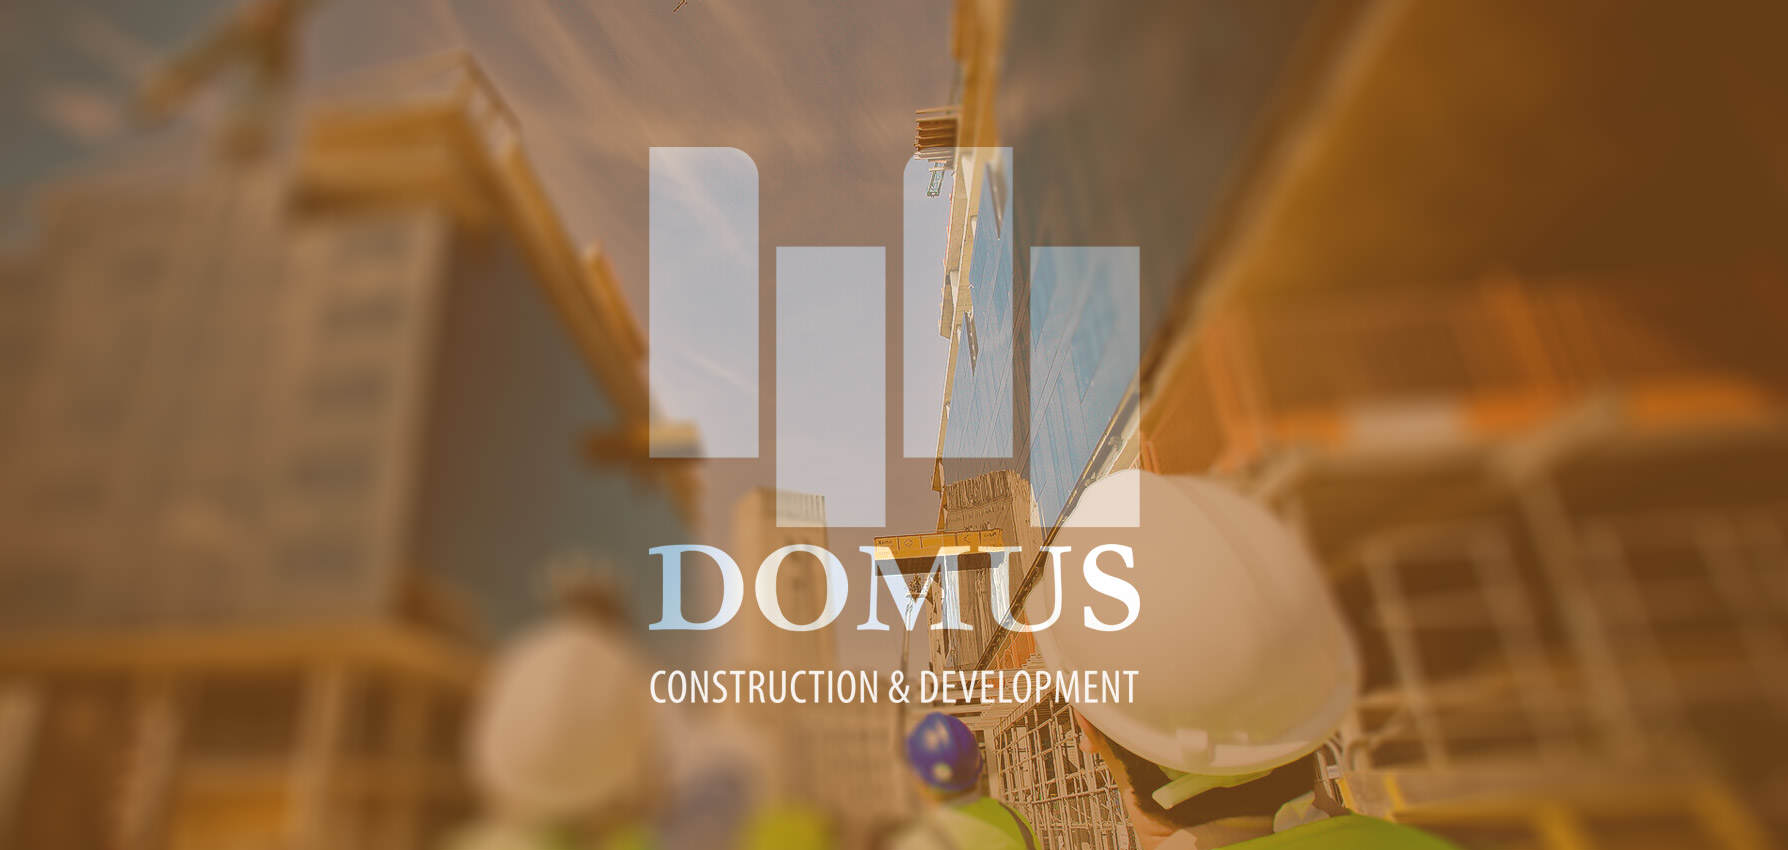 Domus Construction & Development